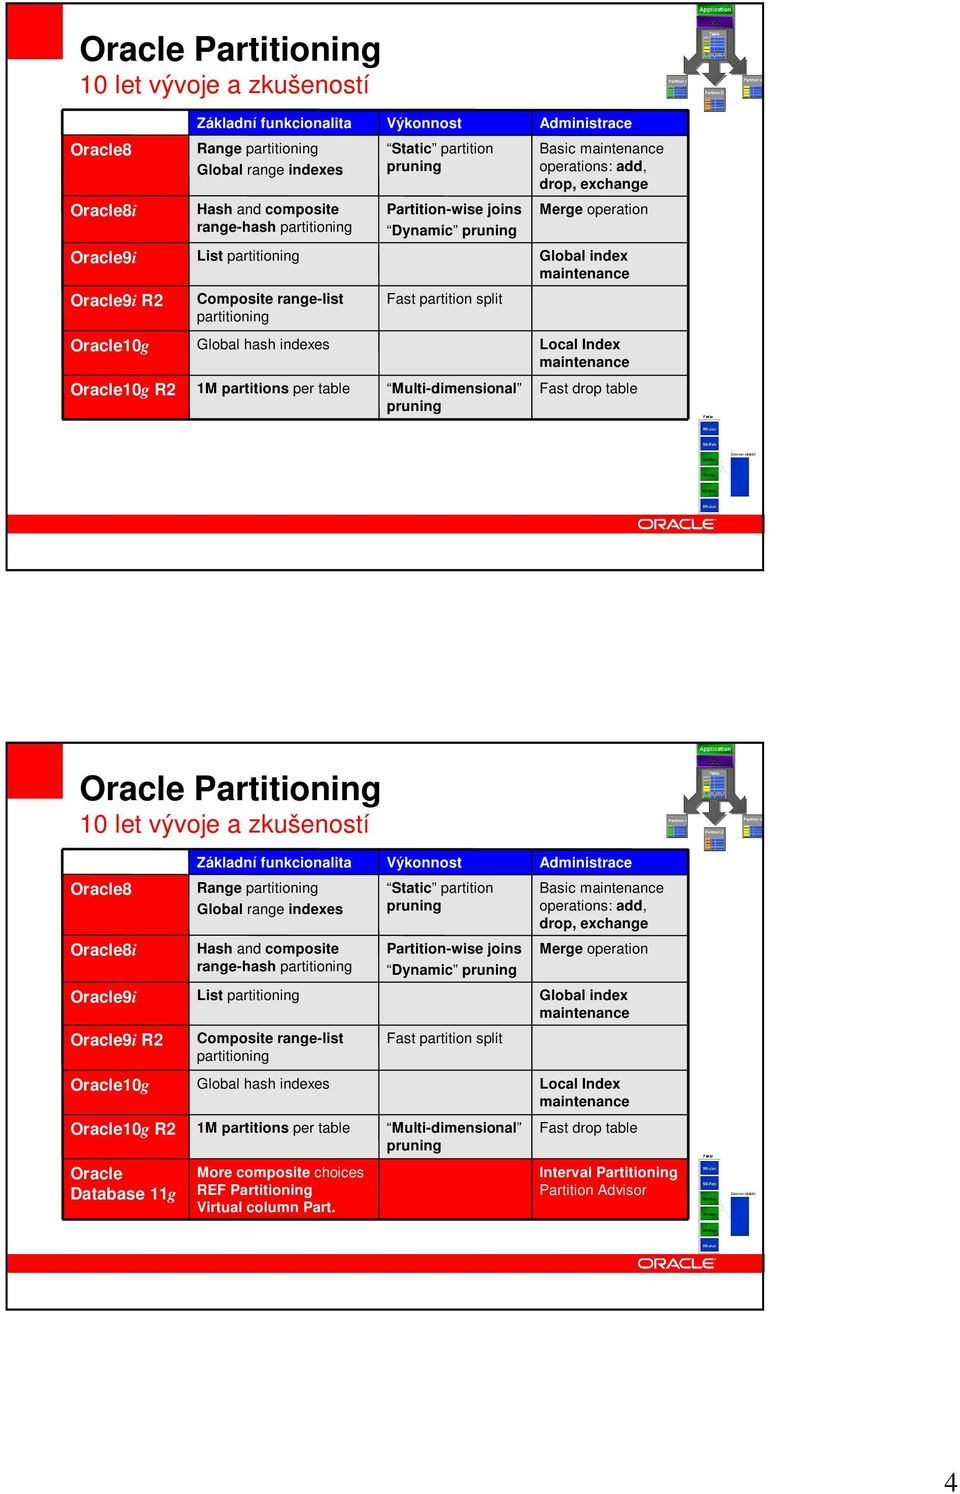 range-list partitioning Fast partition split Oracle10g Global hash indexes Local Index maintenance Oracle10g R2 1M partitions per table Multi-dimensional pruning Fast drop table   range-list